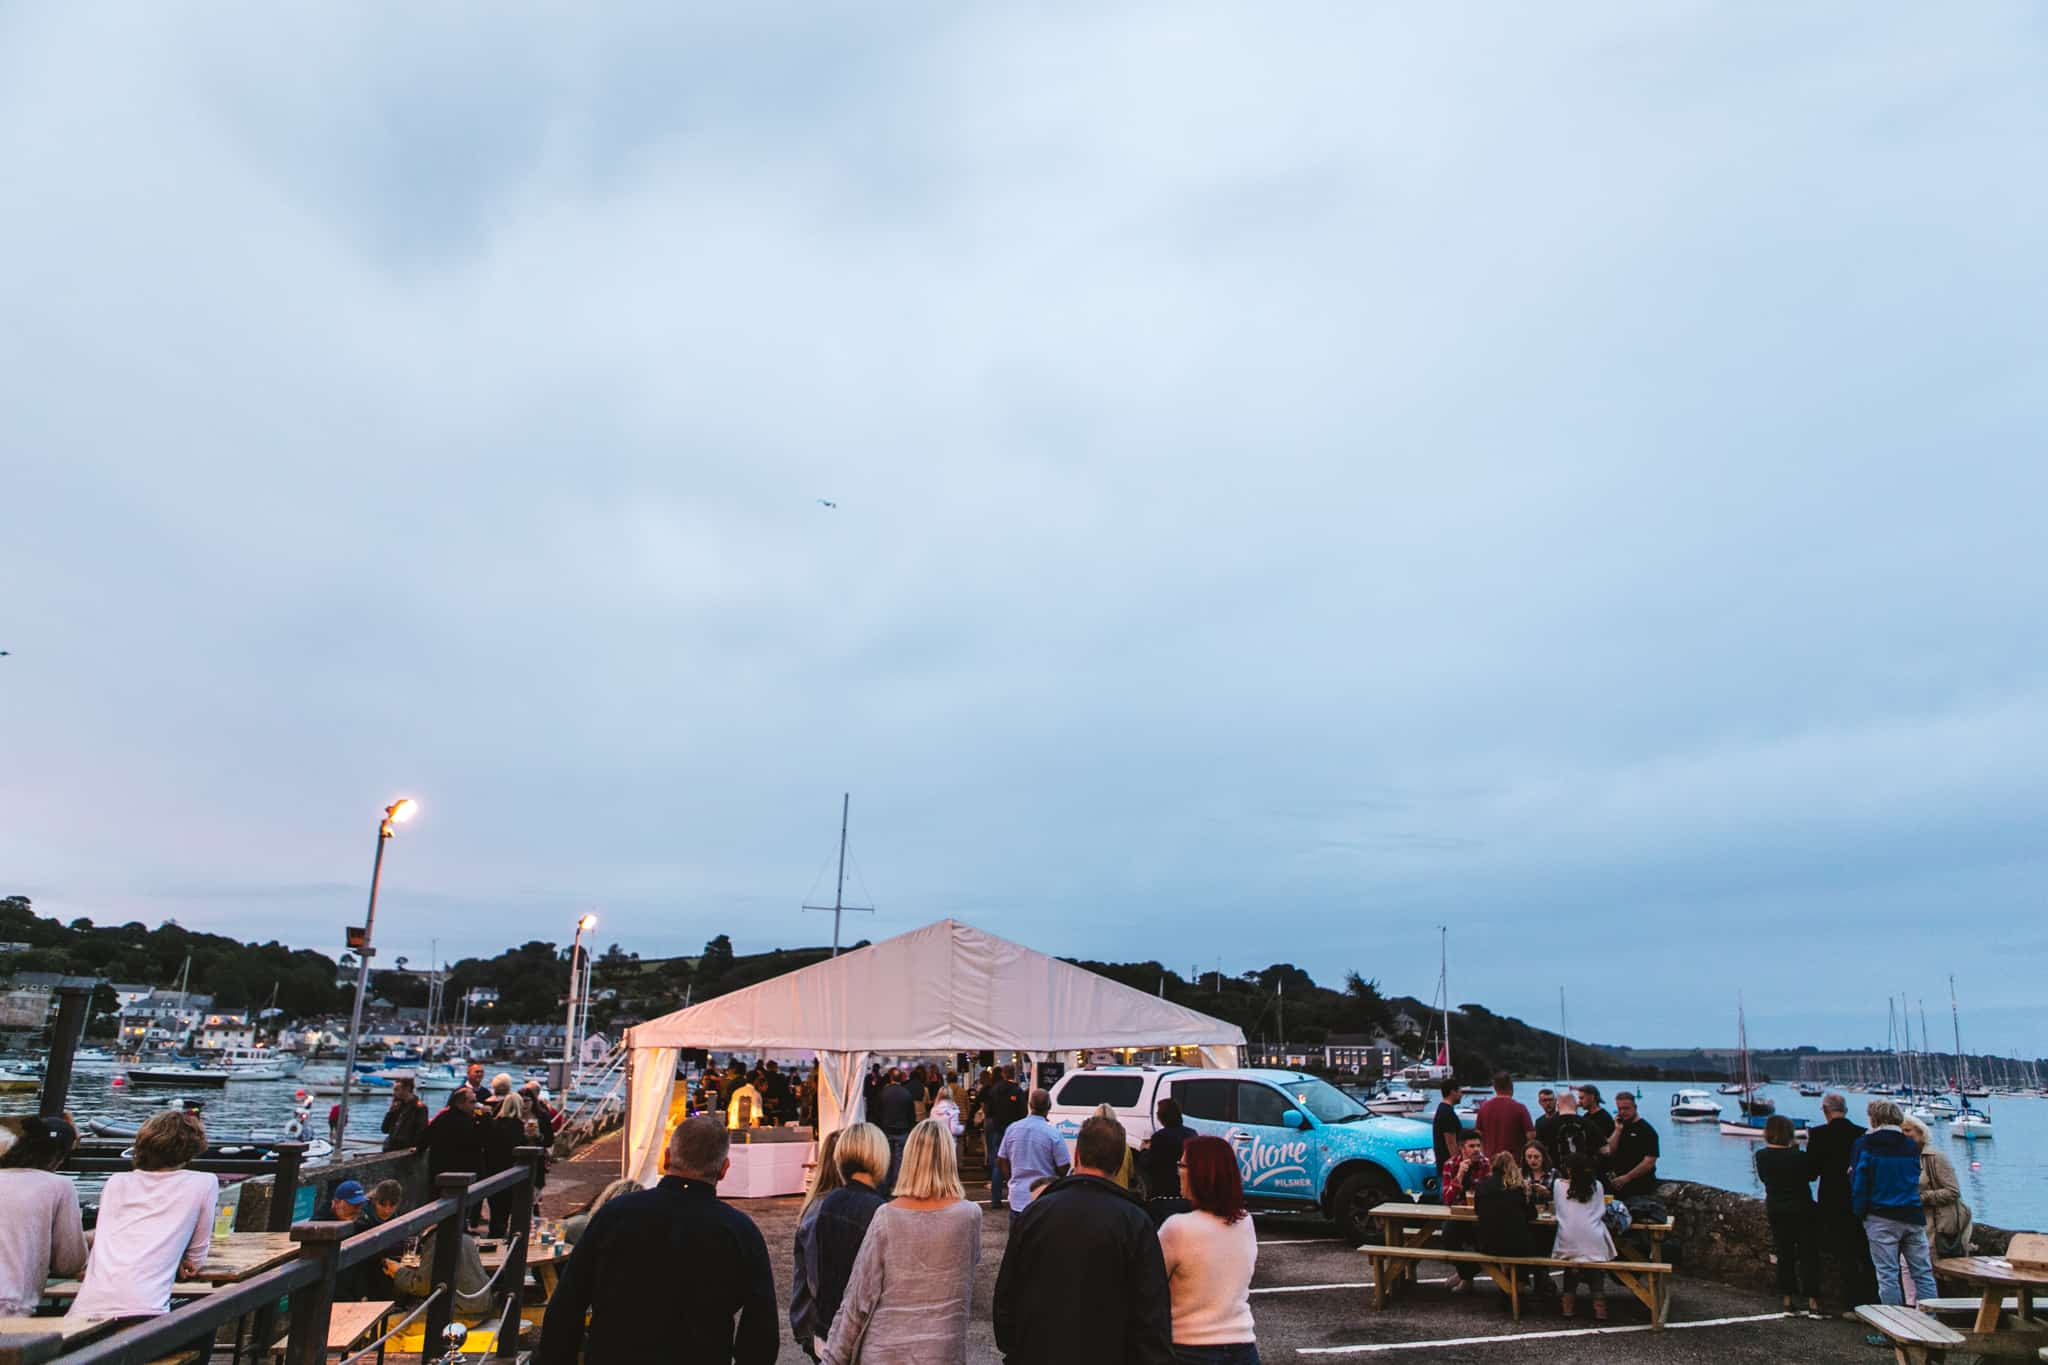 falmouth-week-at-the-working-boat-pub-live-music-events-falmouth-cornwall (47 of 114)